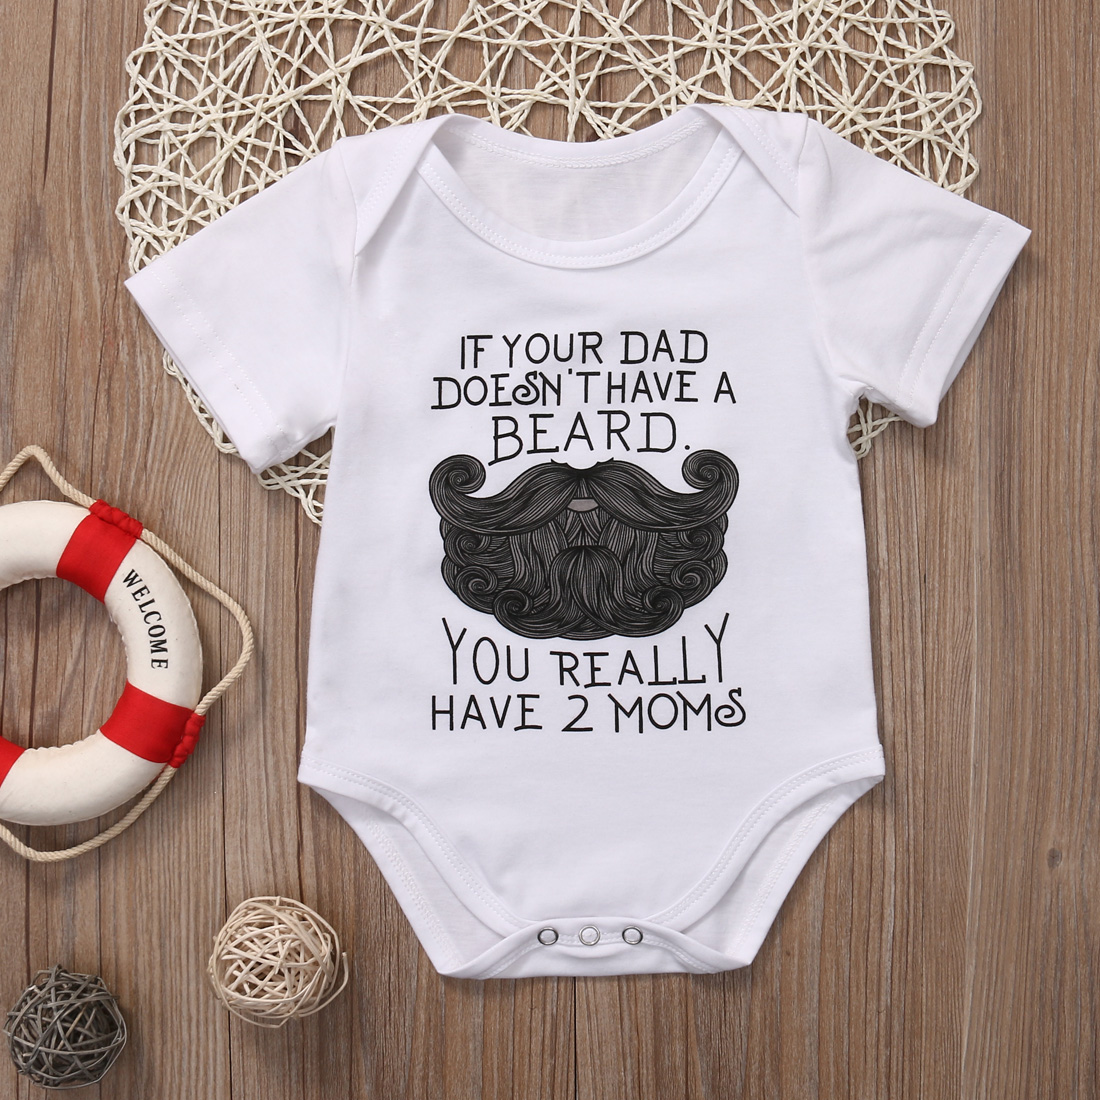 4abf7e15f Funny Newborn Baby Girl Boy Romper Baby grow Clothes Playsuit ...